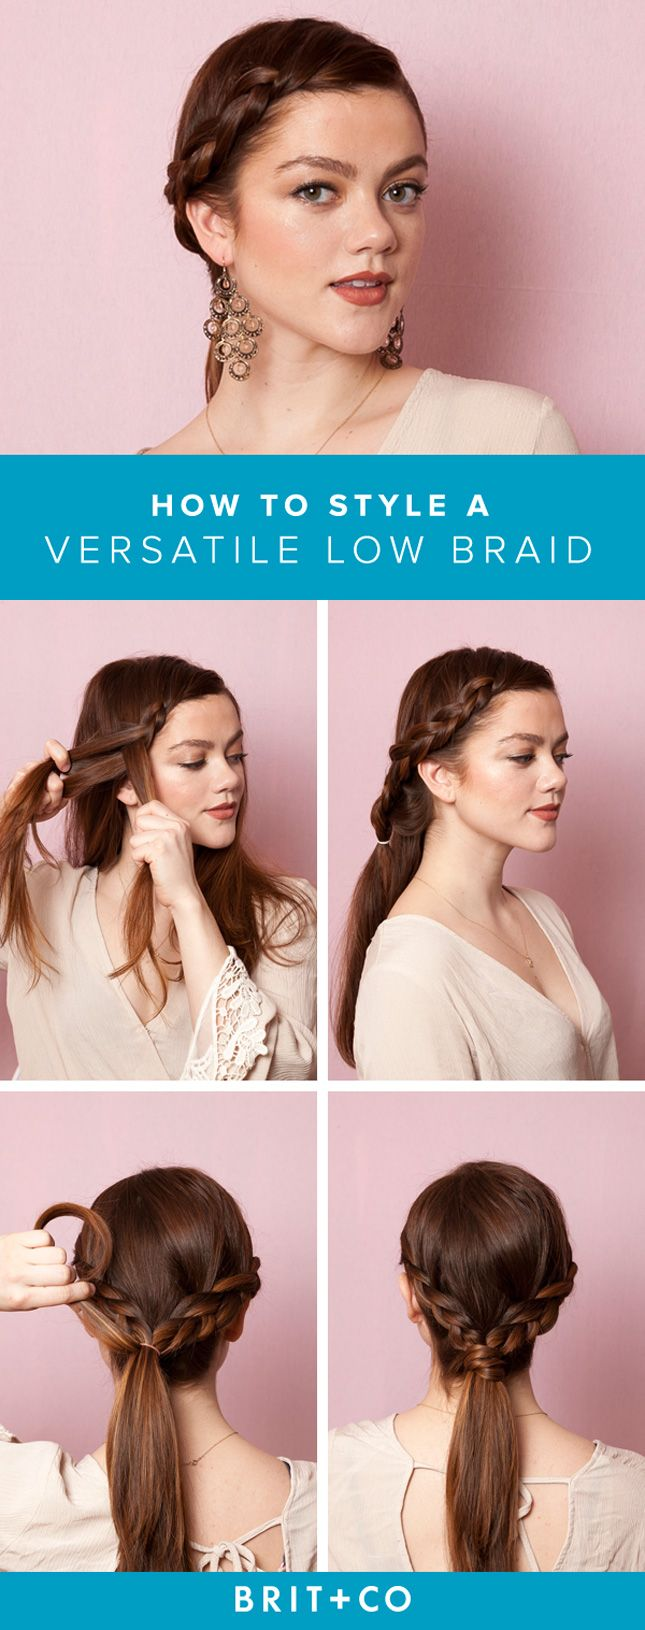 Take your hair to the next level with this simple versatile low braid 'do.